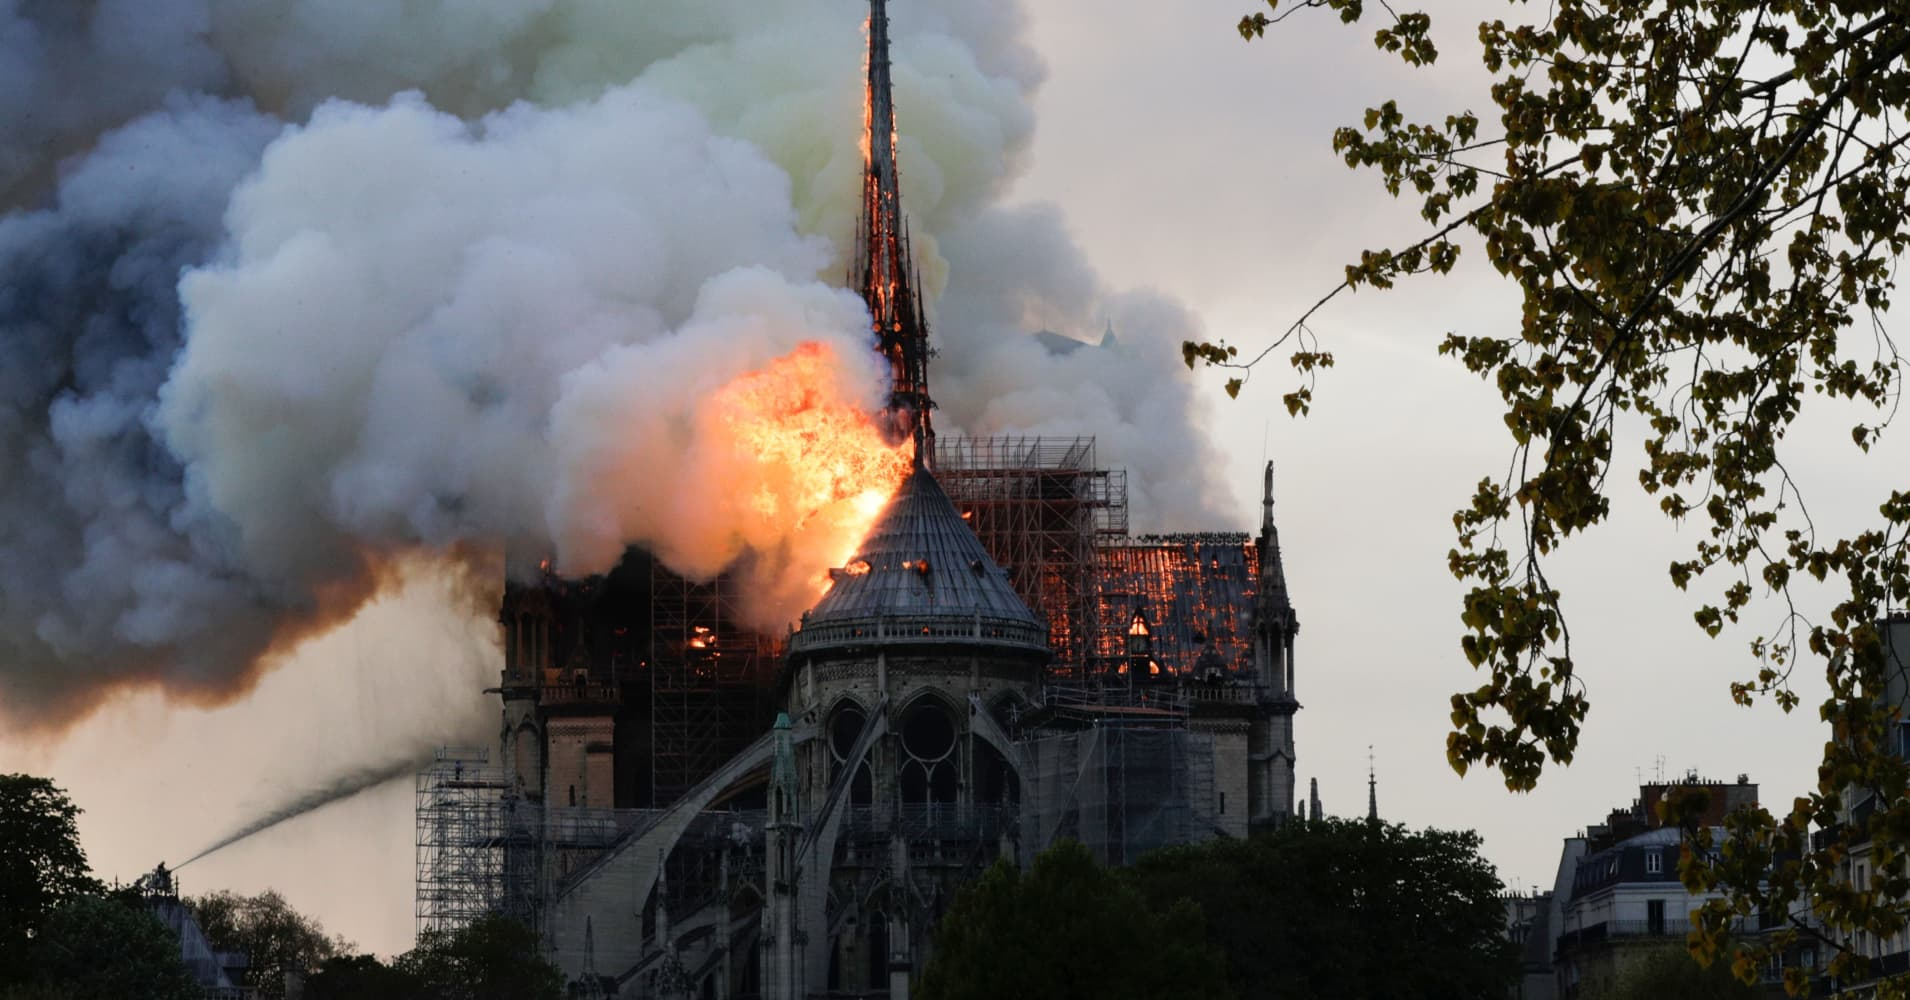 Apple joins French firms in pledging millions to rebuild Notre Dame after fire